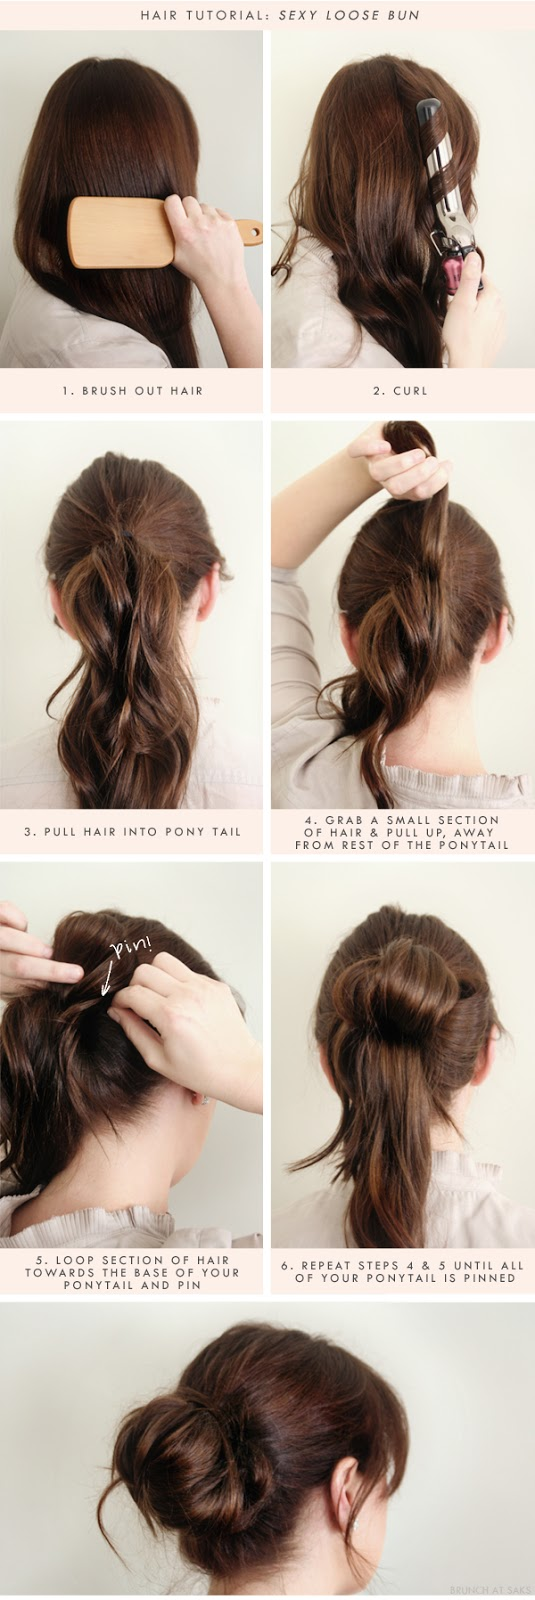 Magnificent Top 25 Messy Hair Bun Tutorials Perfect For Those Lazy Mornings Hairstyles For Women Draintrainus